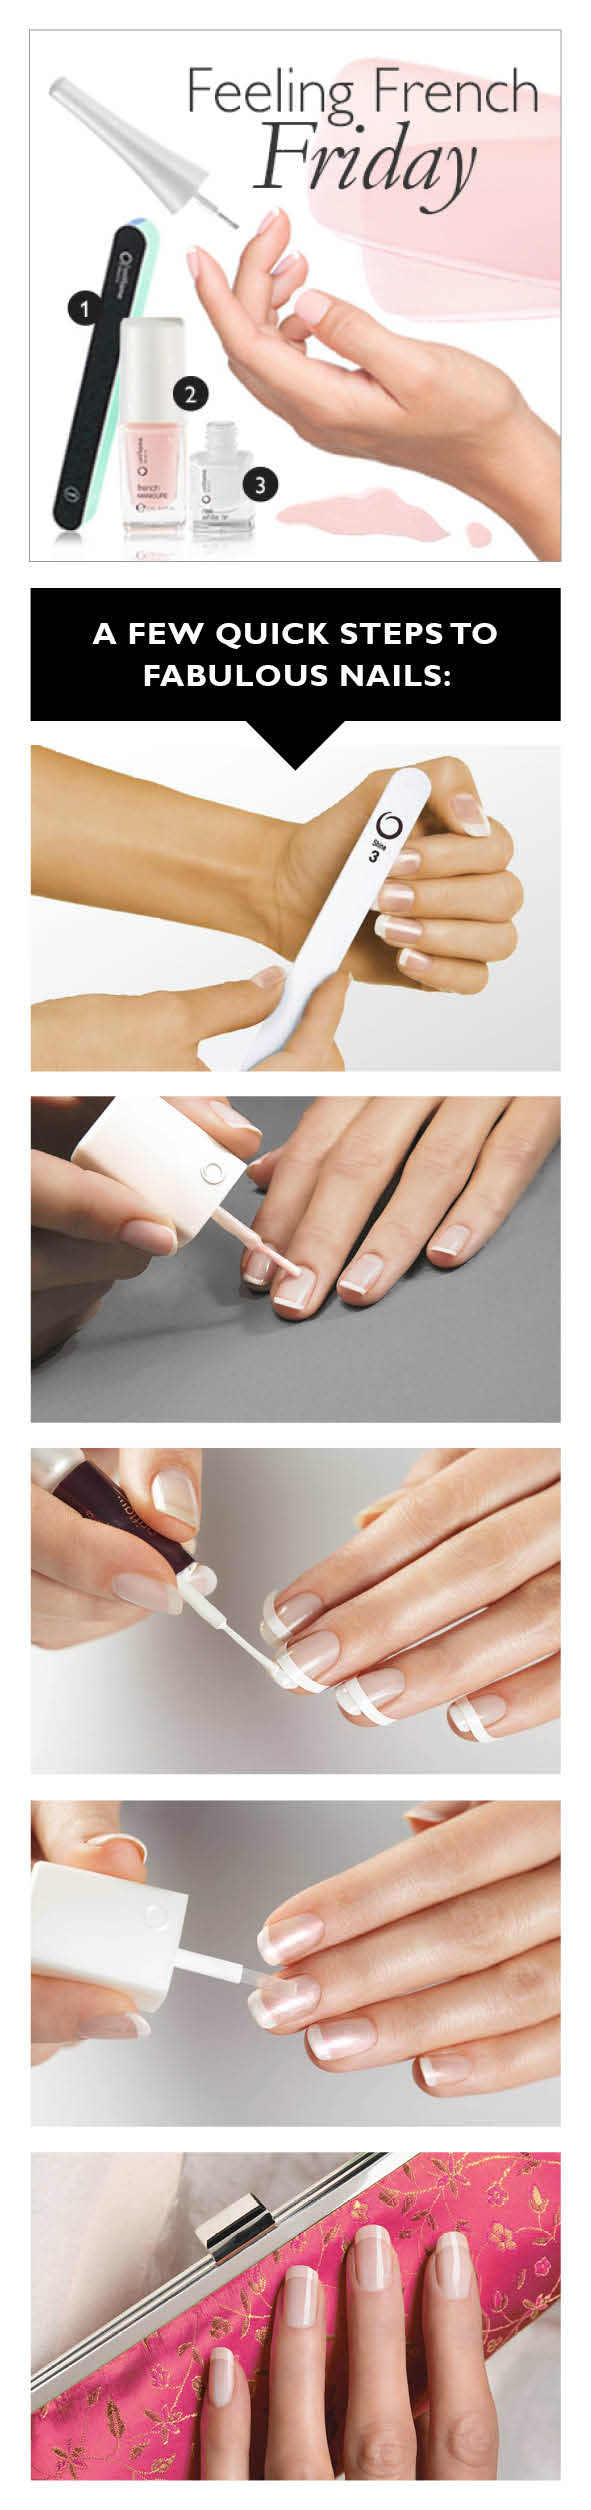 1 2 3 Voilà French Manicure Start With The Beauty Nail Buffer 20657 To Make Your Nails Smooth And Shiny Gently Ly Orif Art Pinte